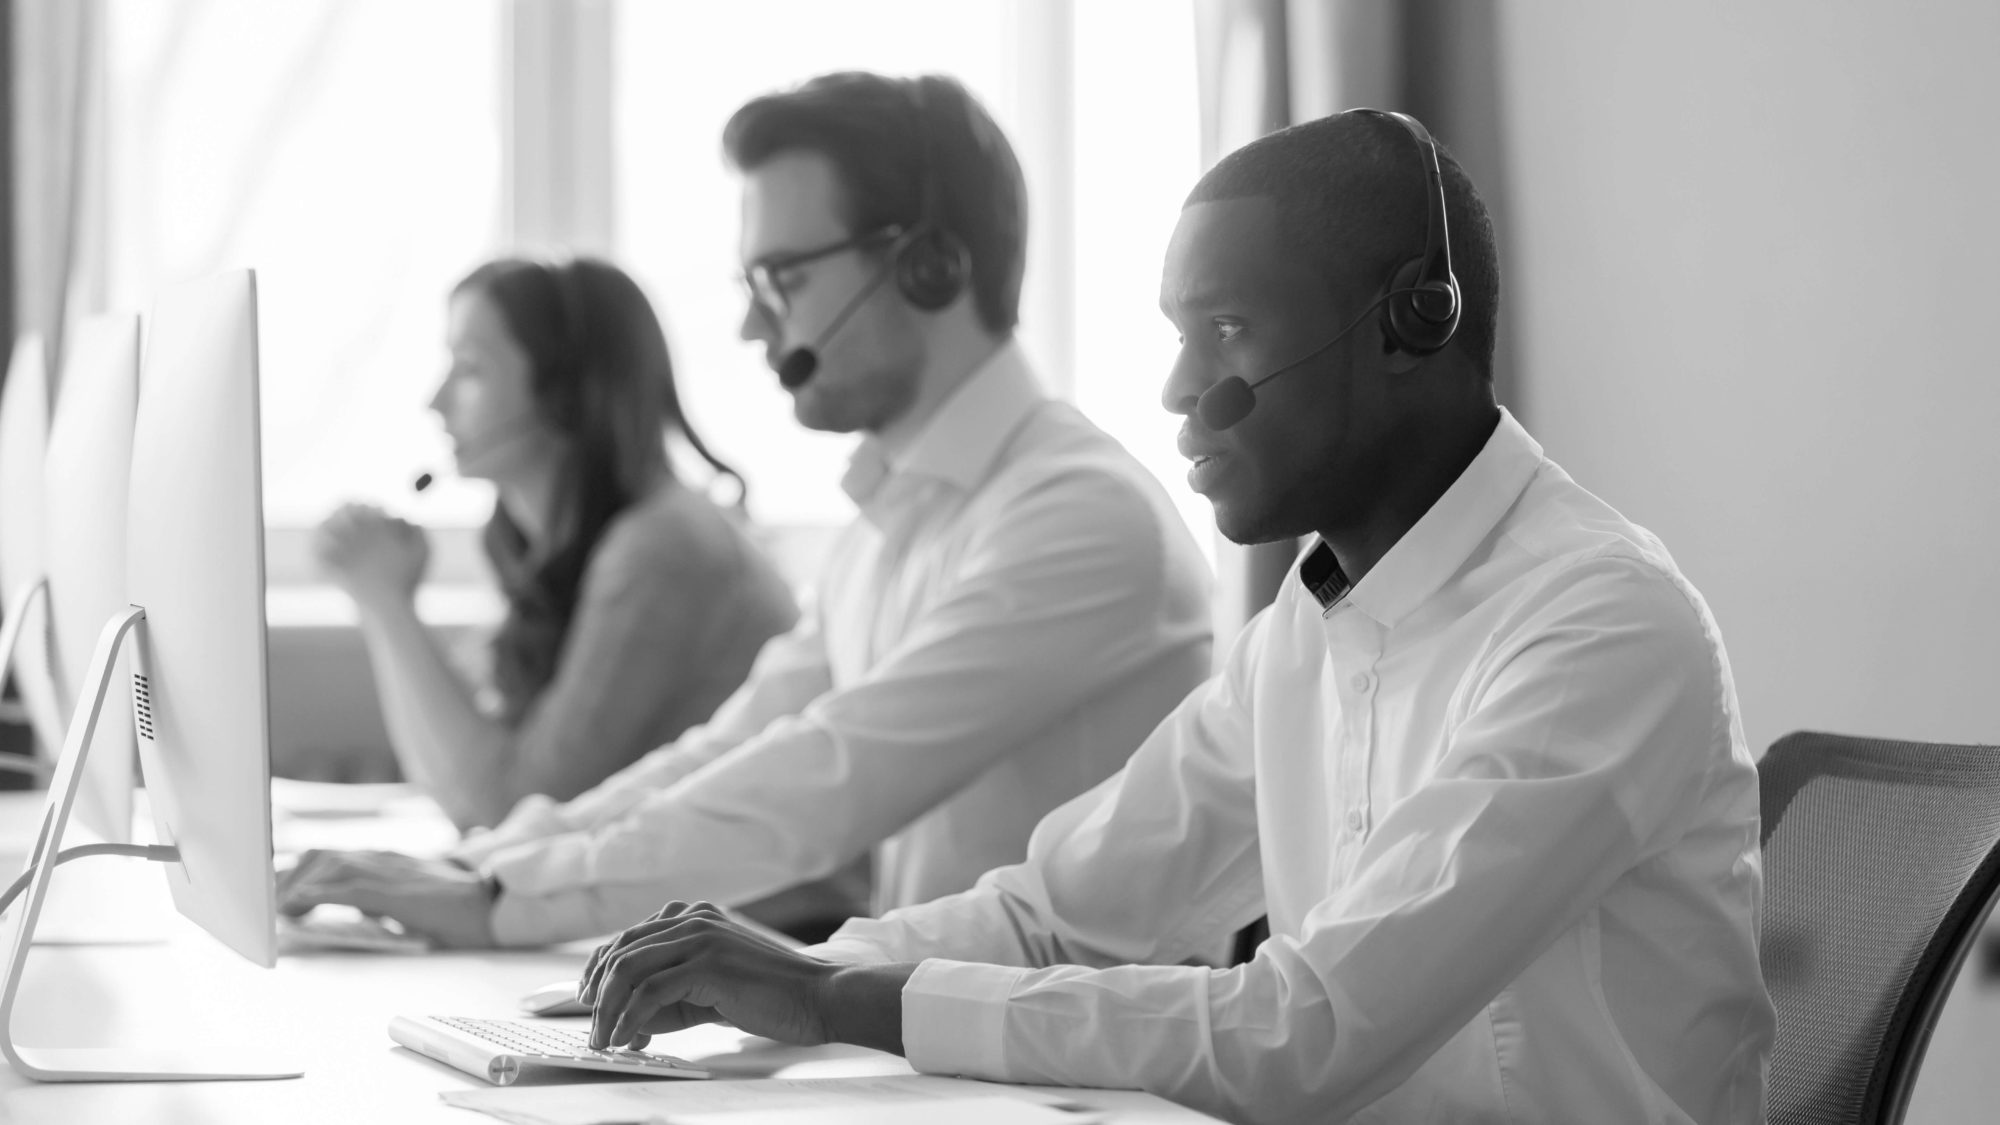 Three people working at call center